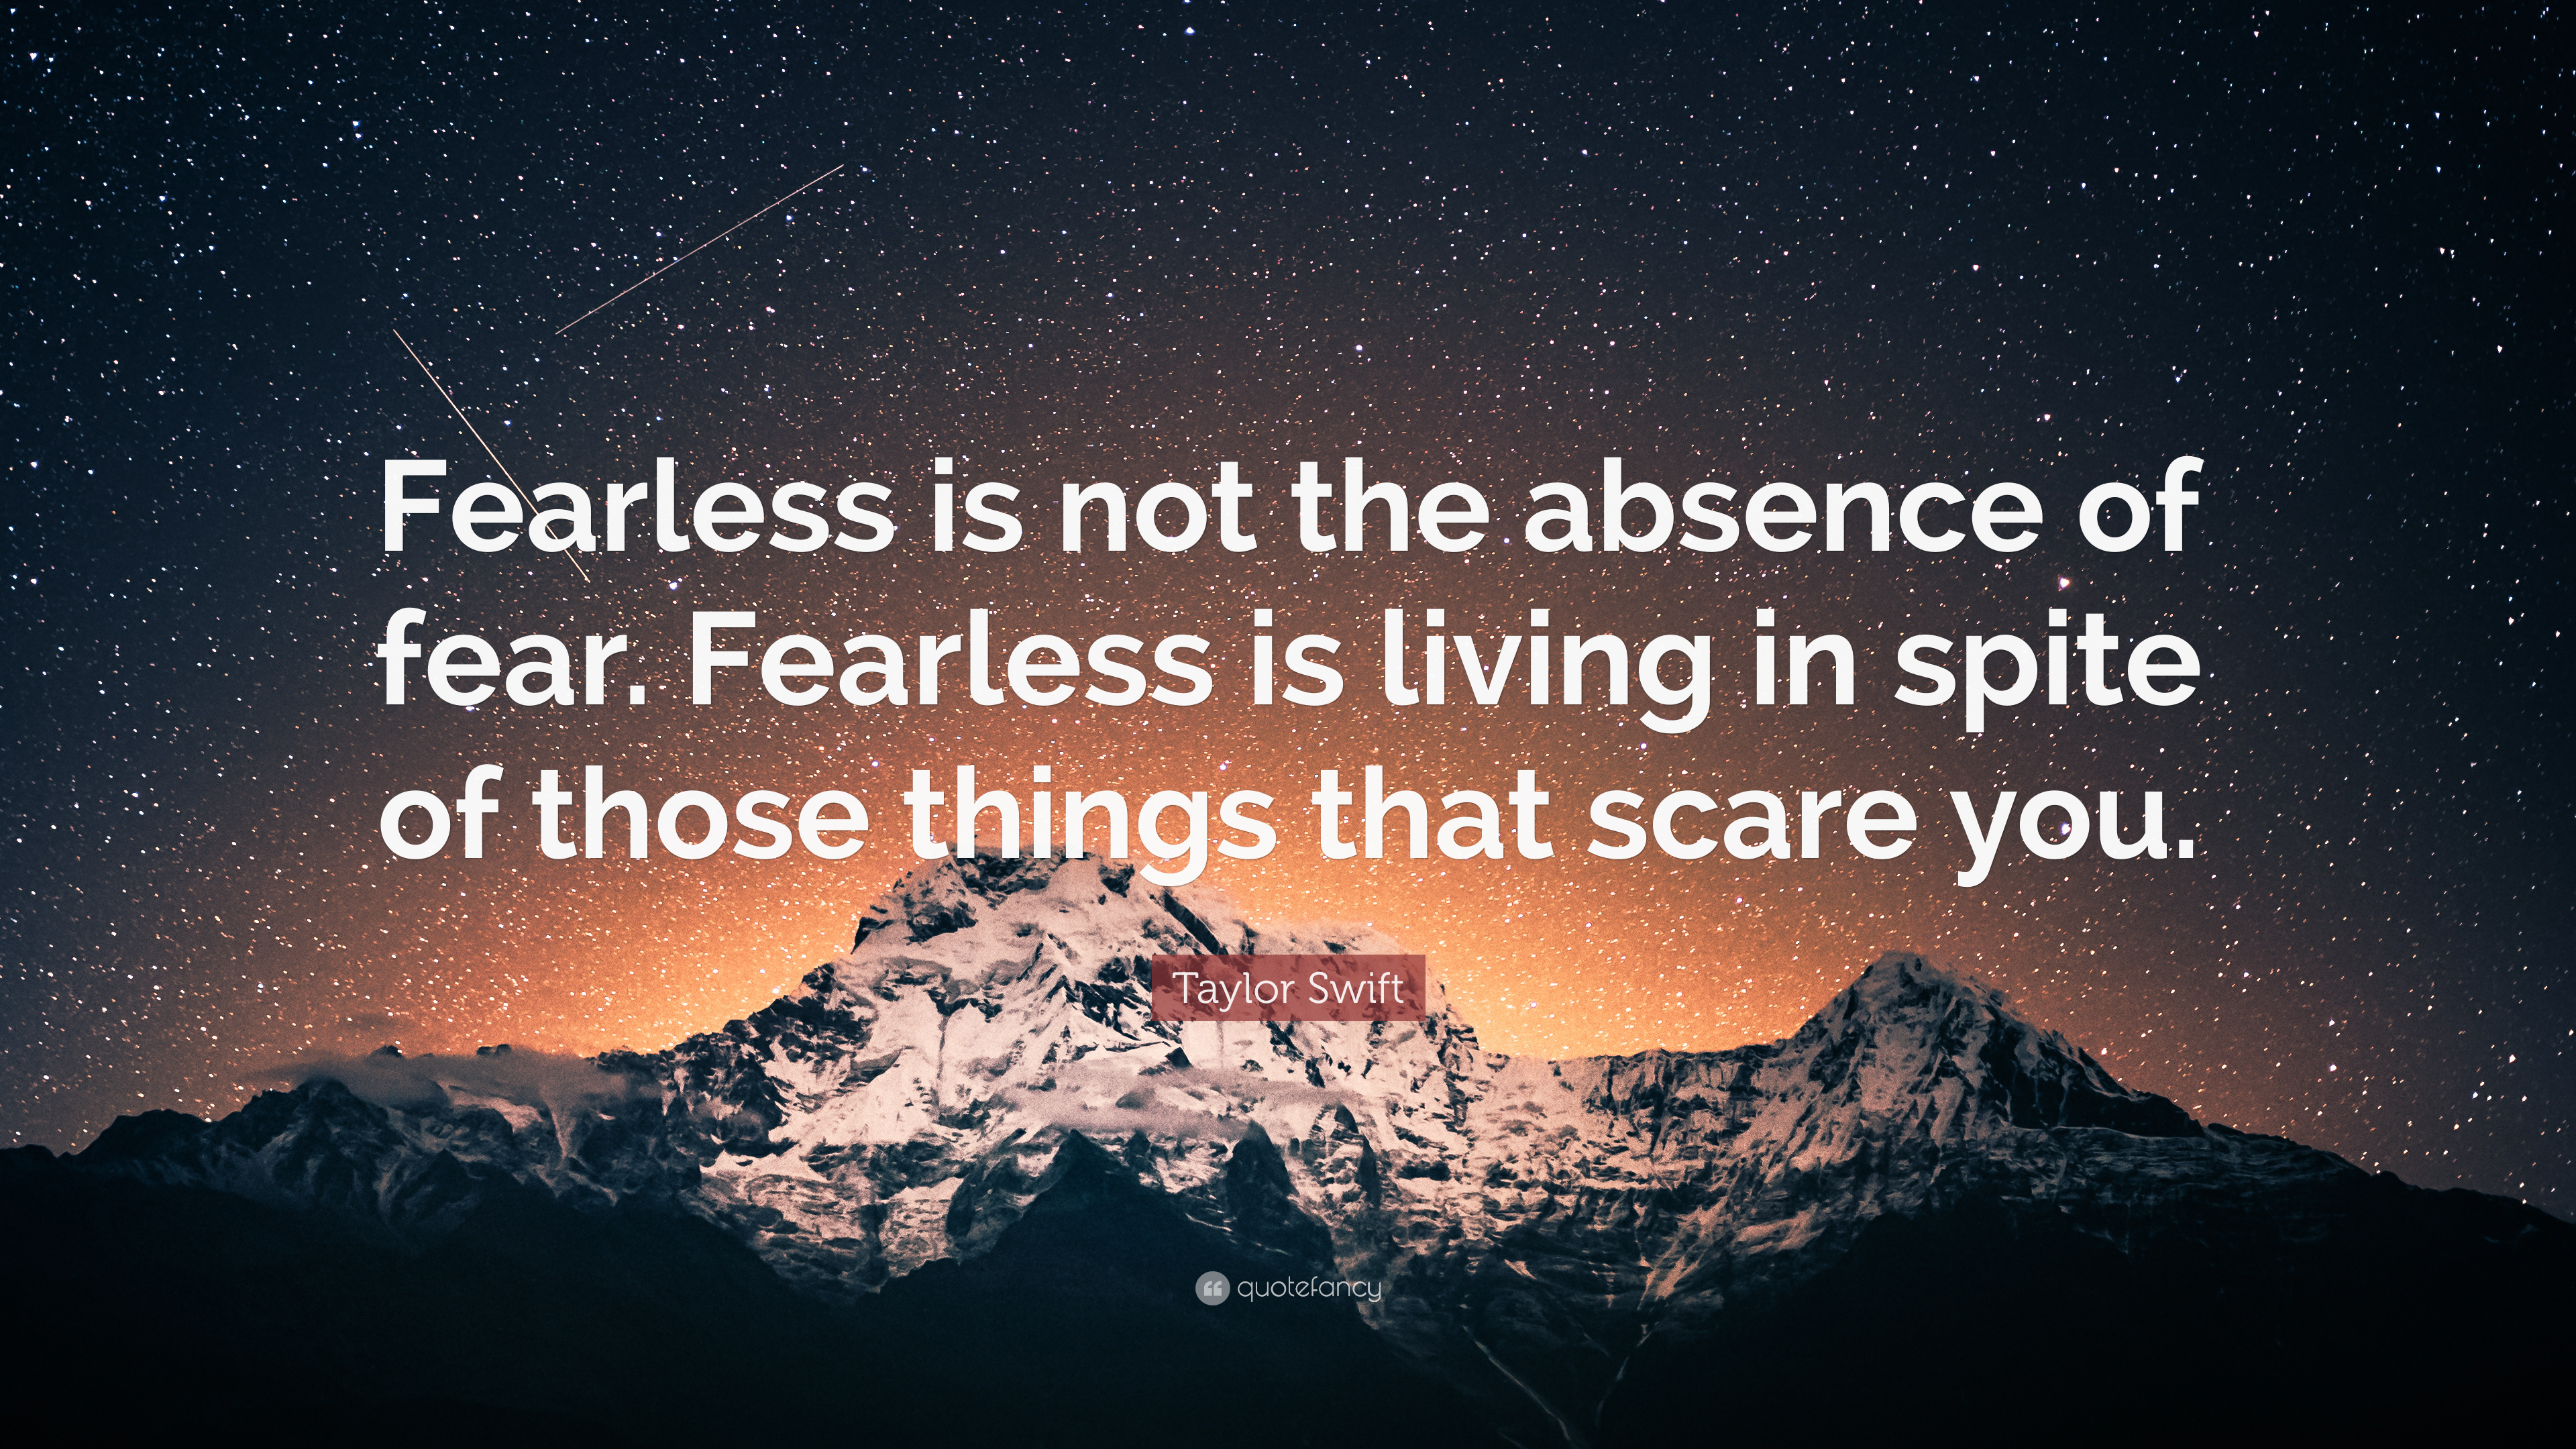 Taylor Swift Quote Fearless Is Not The Absence Of Fear Fearless